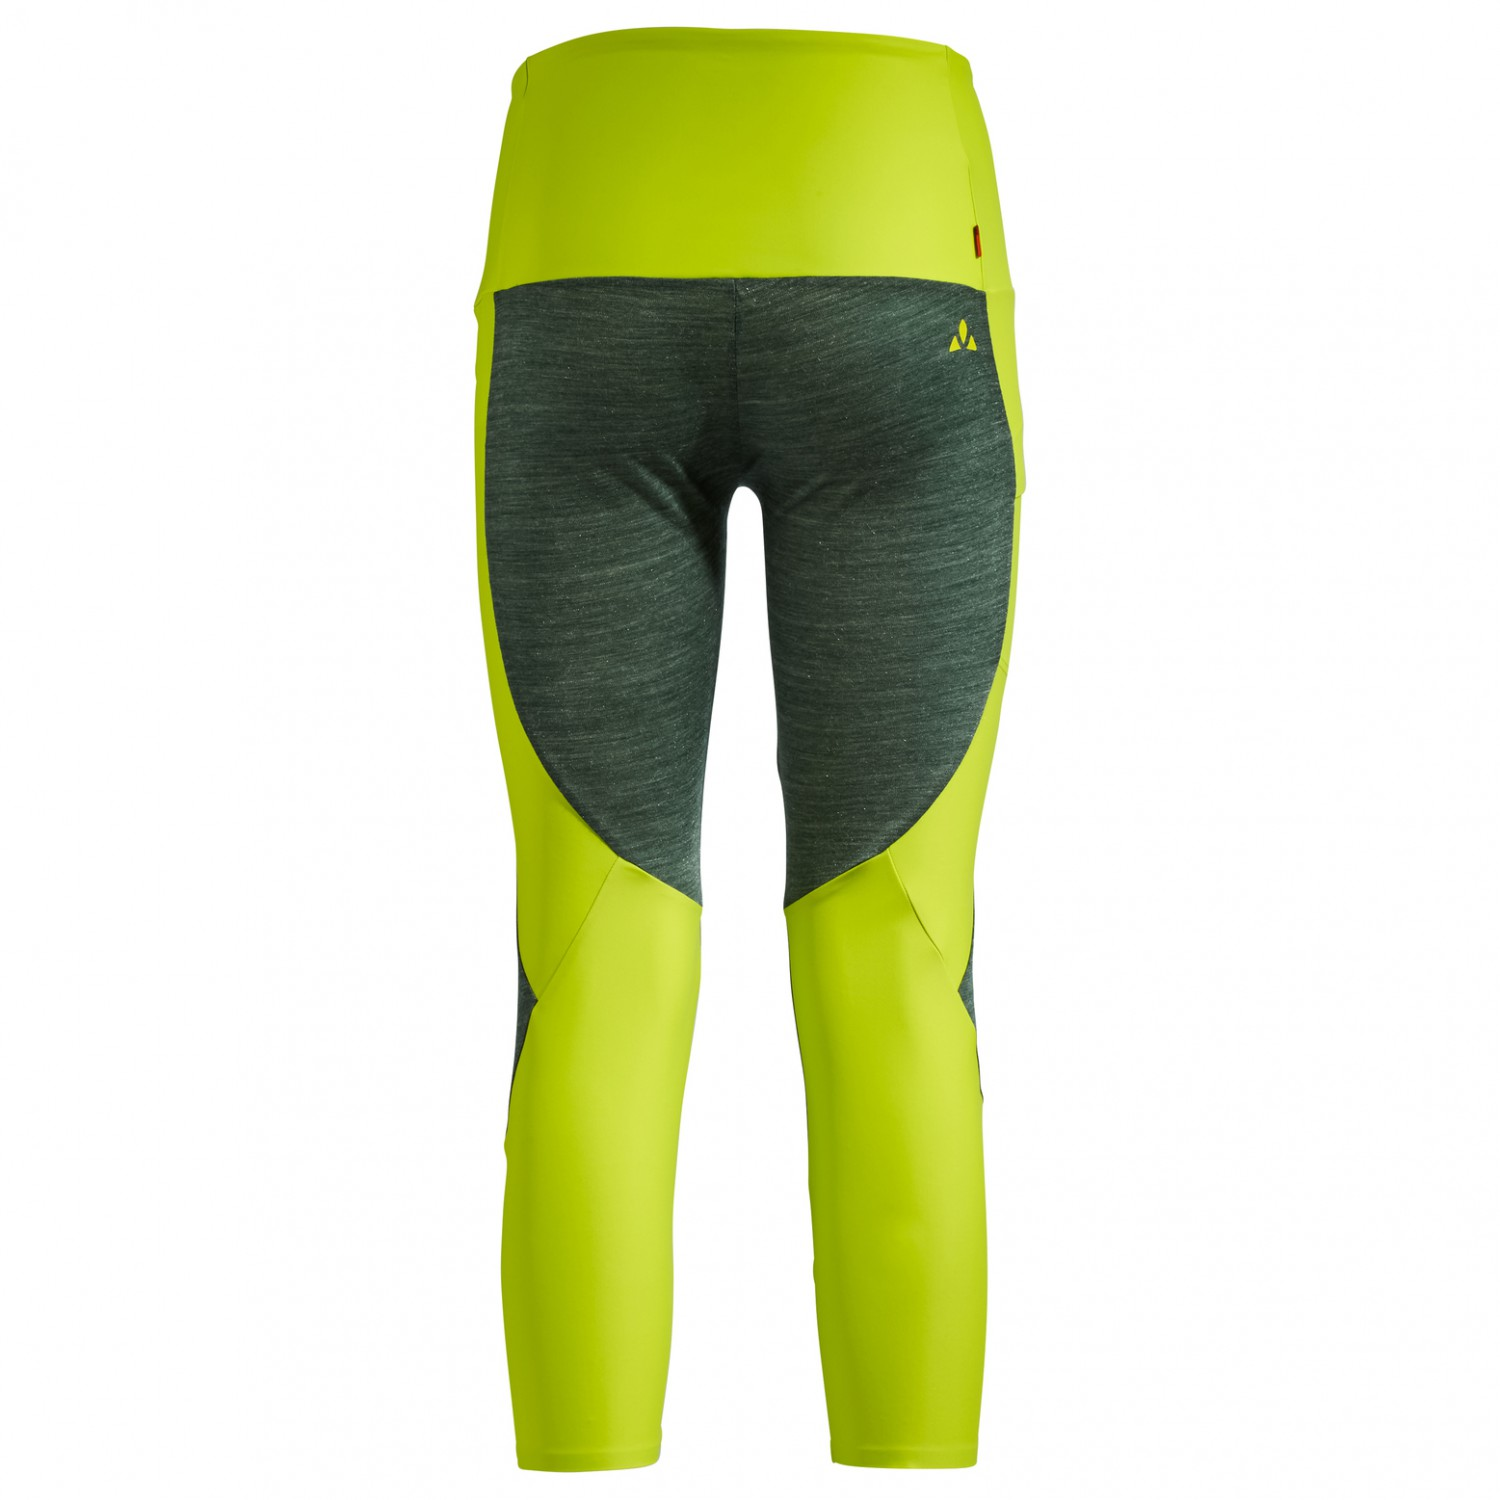 16425c545af26 Vaude Green Core Tights - Leggings Women's | Free UK Delivery ...